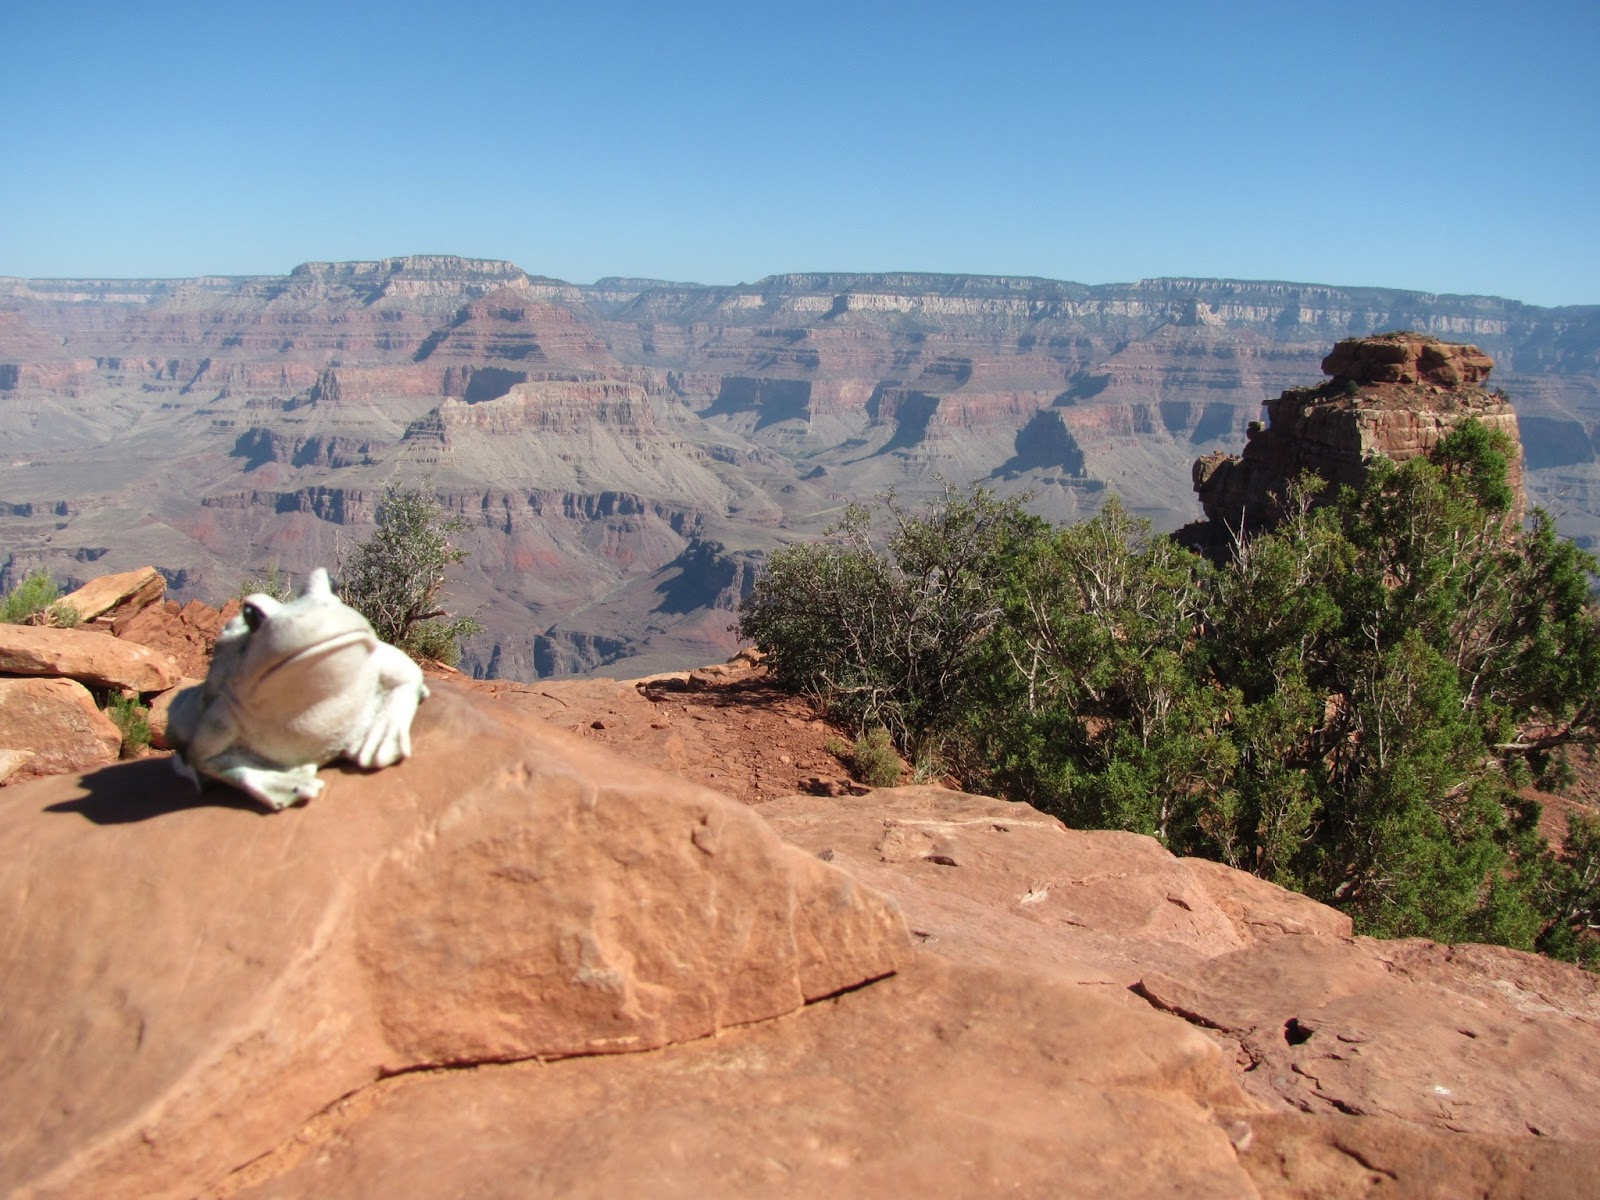 Frog sits on the edge of the canyon at Grand Canyon National Park, Arizona